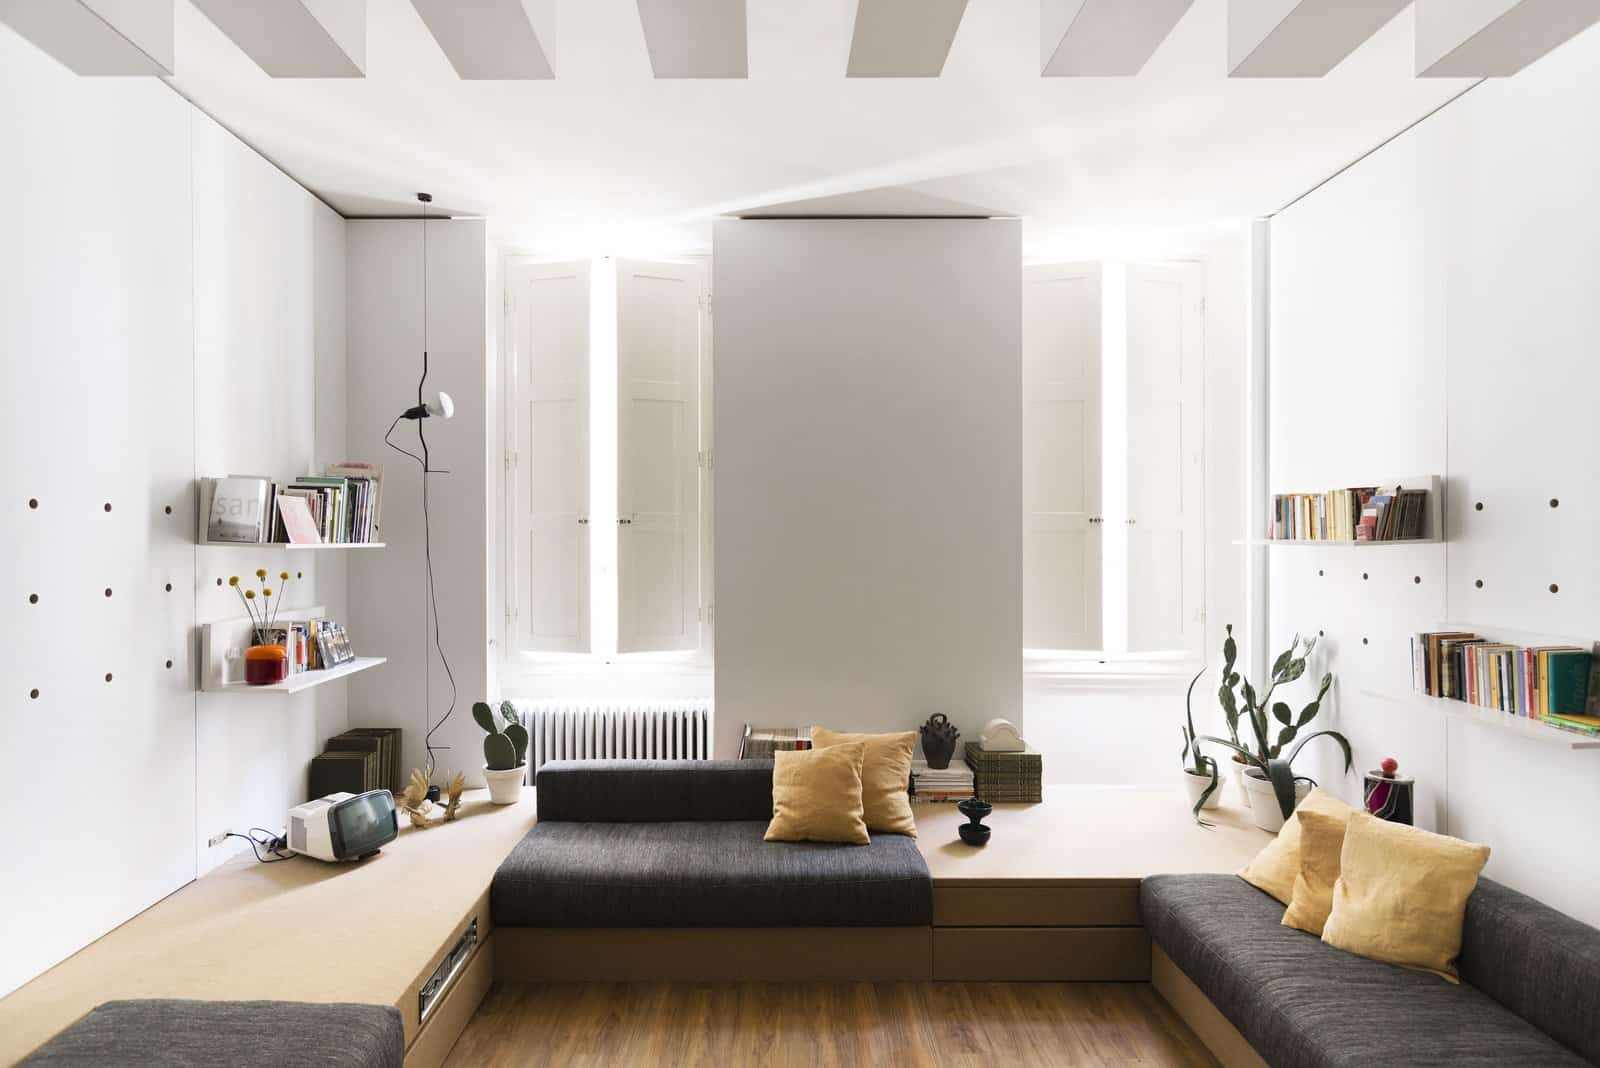 In the main living area are built in platforms with storage spaces and niches that can be filled with padding to create sofas or beds1